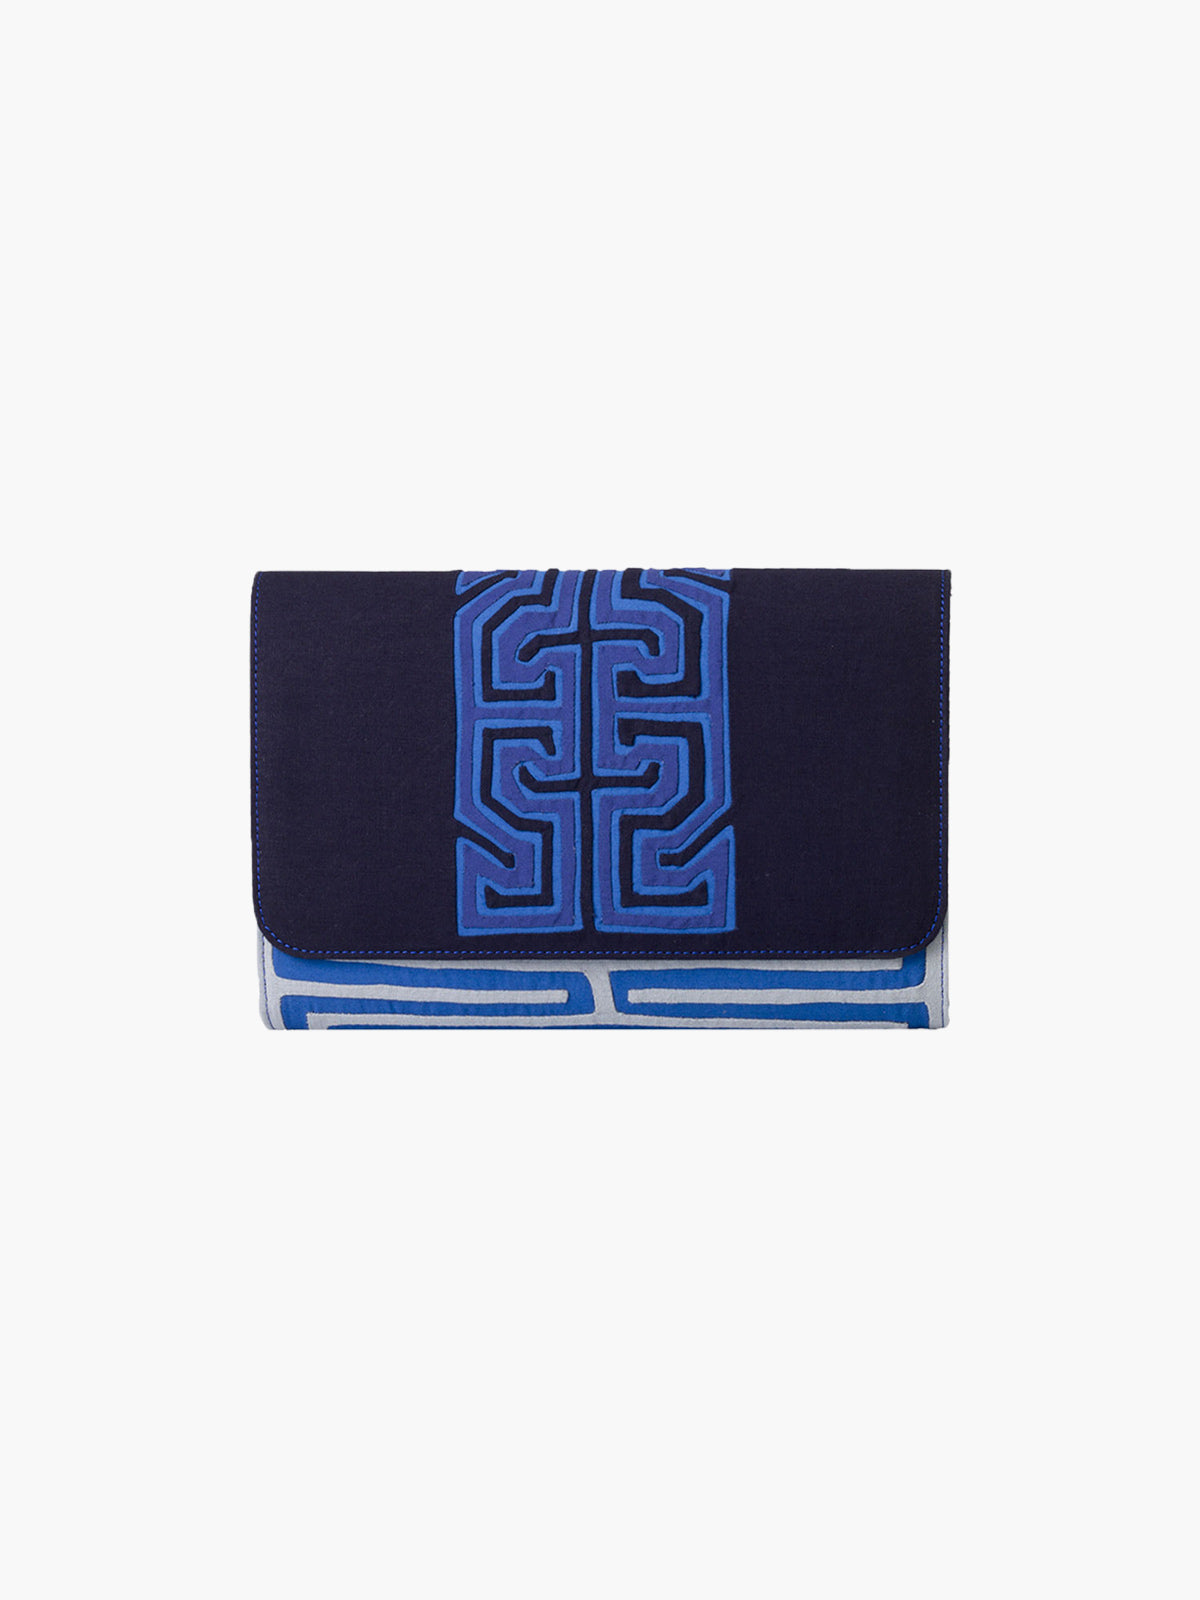 Medium Clutch | Sendero Indigo